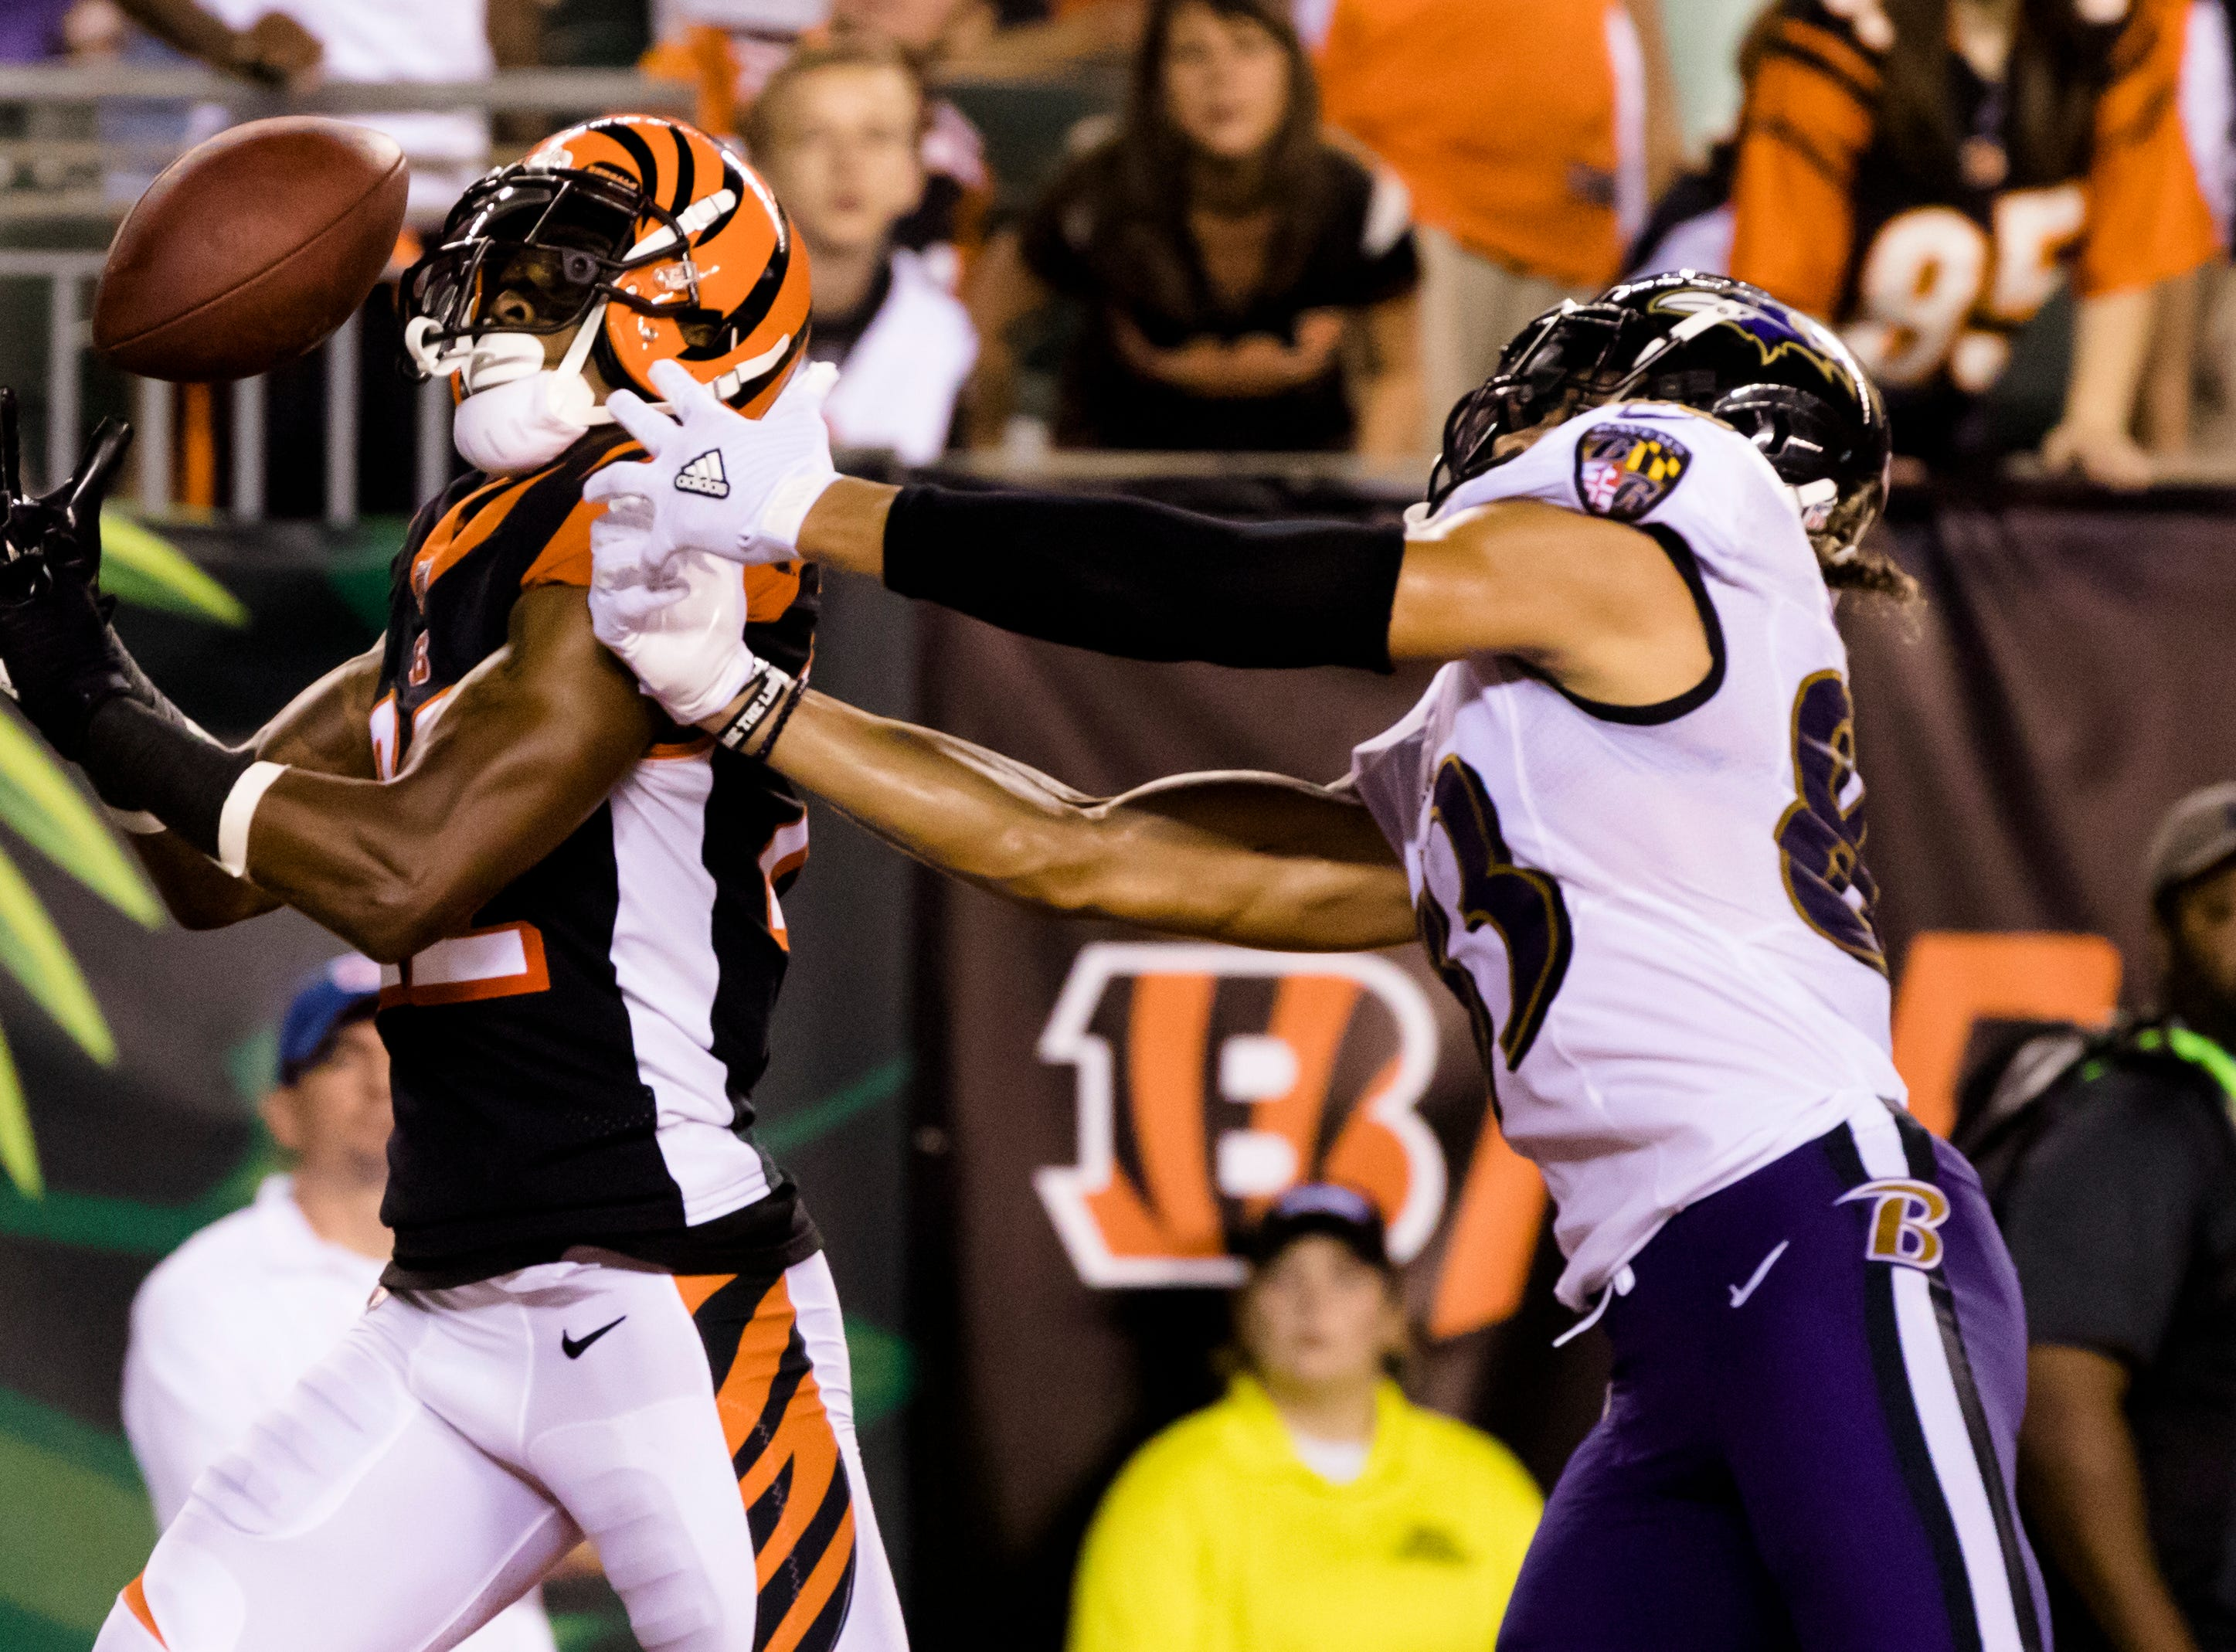 Cincinnati Bengals cornerback William Jackson (22) attempts to intercept a pass intended for Baltimore Ravens wide receiver Willie Snead (83) during the Week 2 NFL game between the Cincinnati Bengals and the Baltimore Ravens, Thursday, Sept. 13, 2018, at Paul Brown Stadium in Cincinnati.